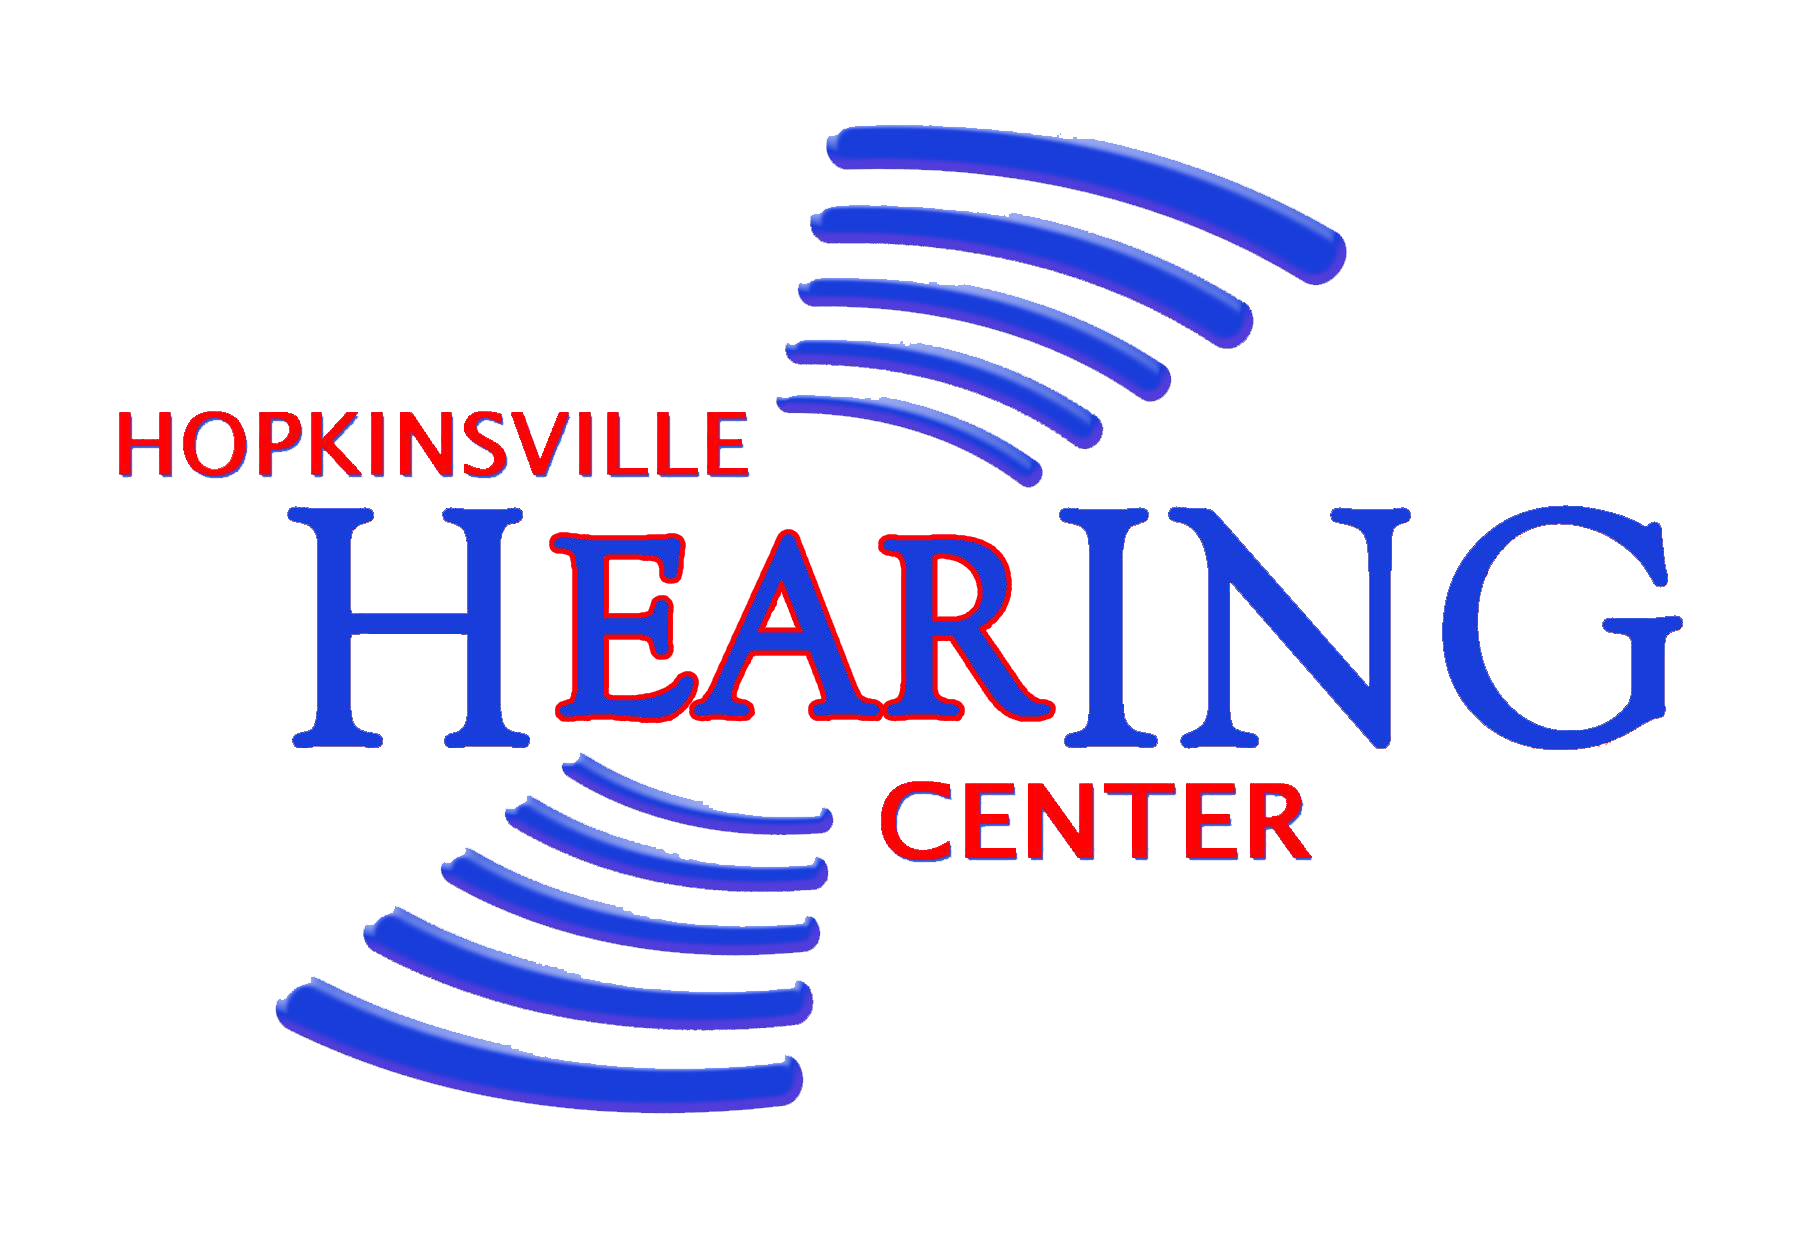 Hopkinsville Hearing Center